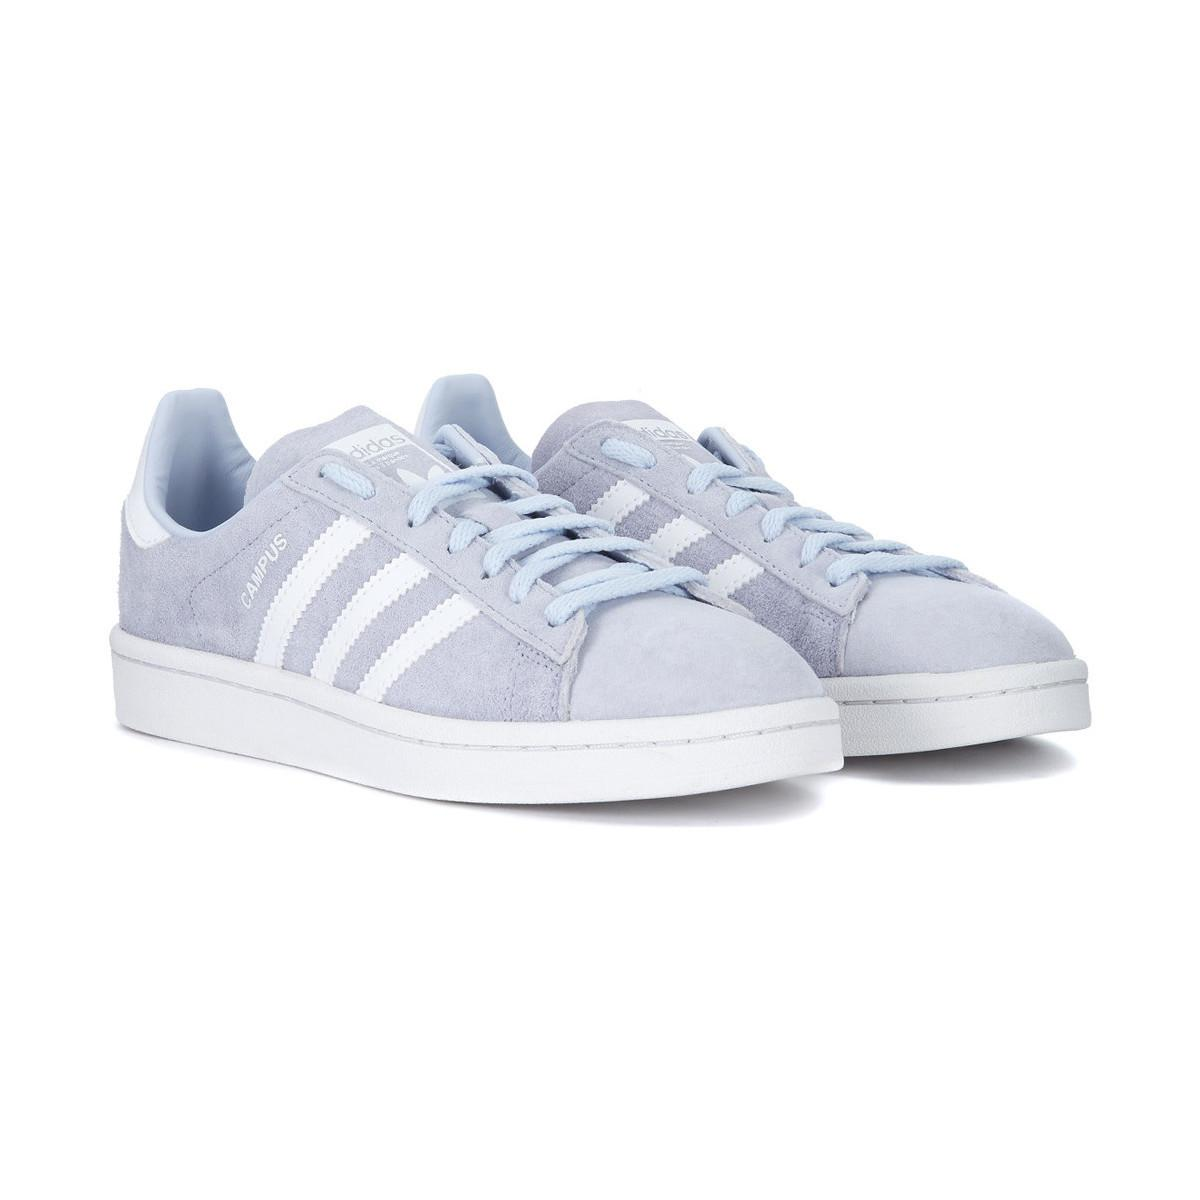 adidas Campus Light Blue Nubuck Sneaker Women's Shoes (trainers) In Other